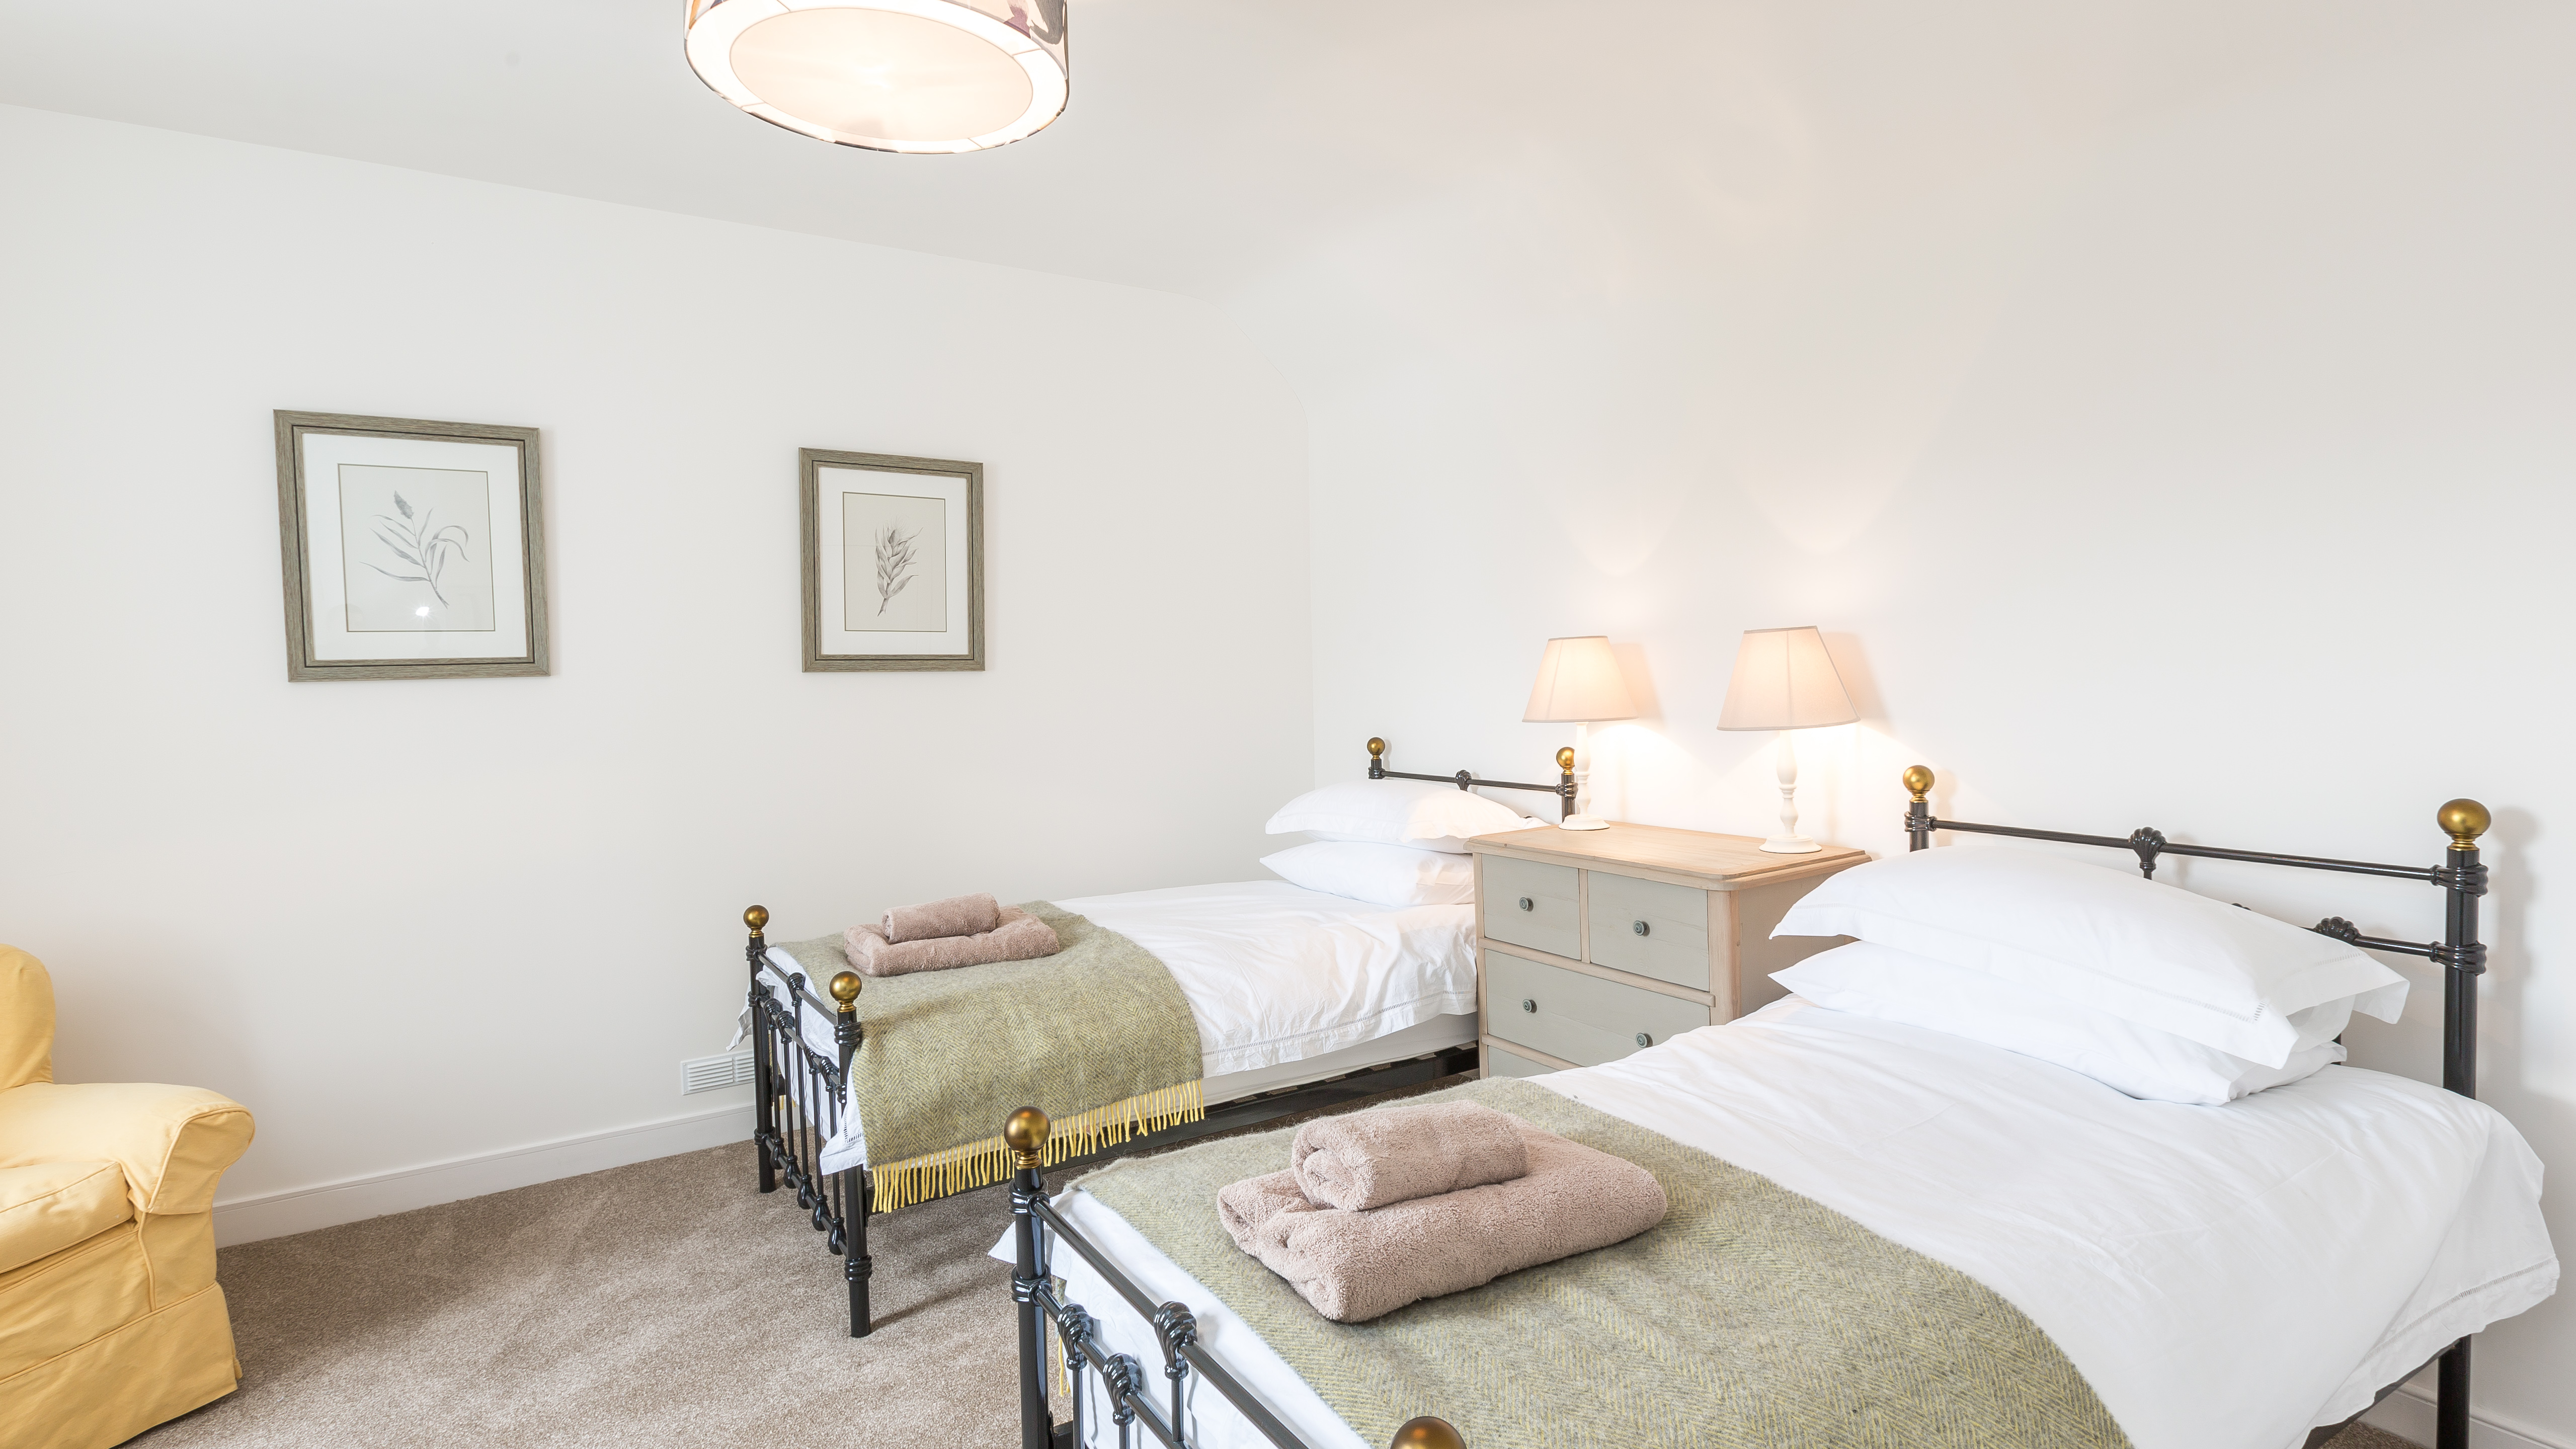 longhill-farmhouse-whithorn-newton-stewart-double-bedroom-1-38